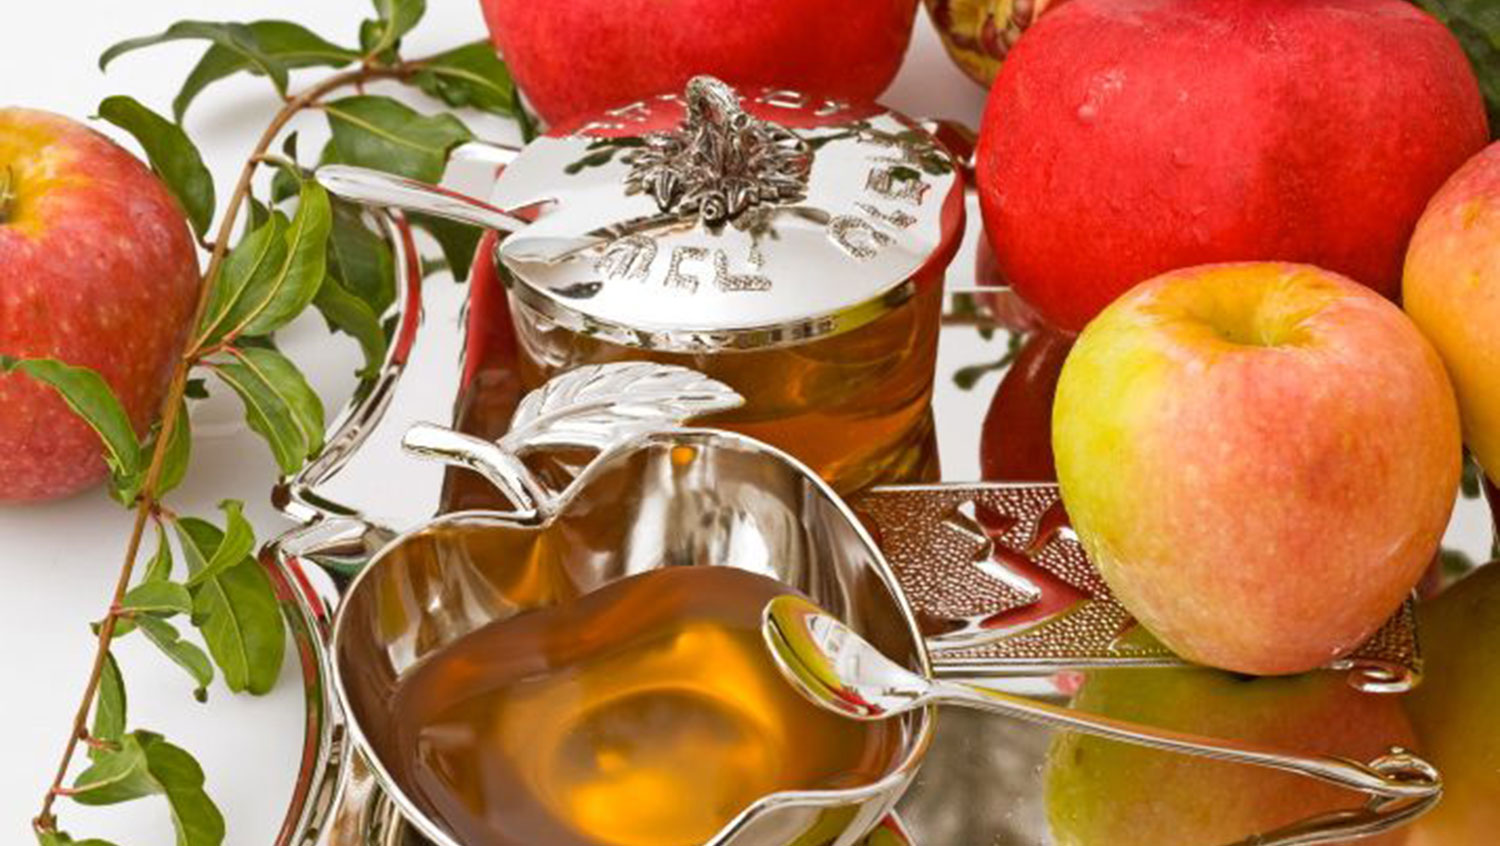 Items for celebrating Rosh Hashanah